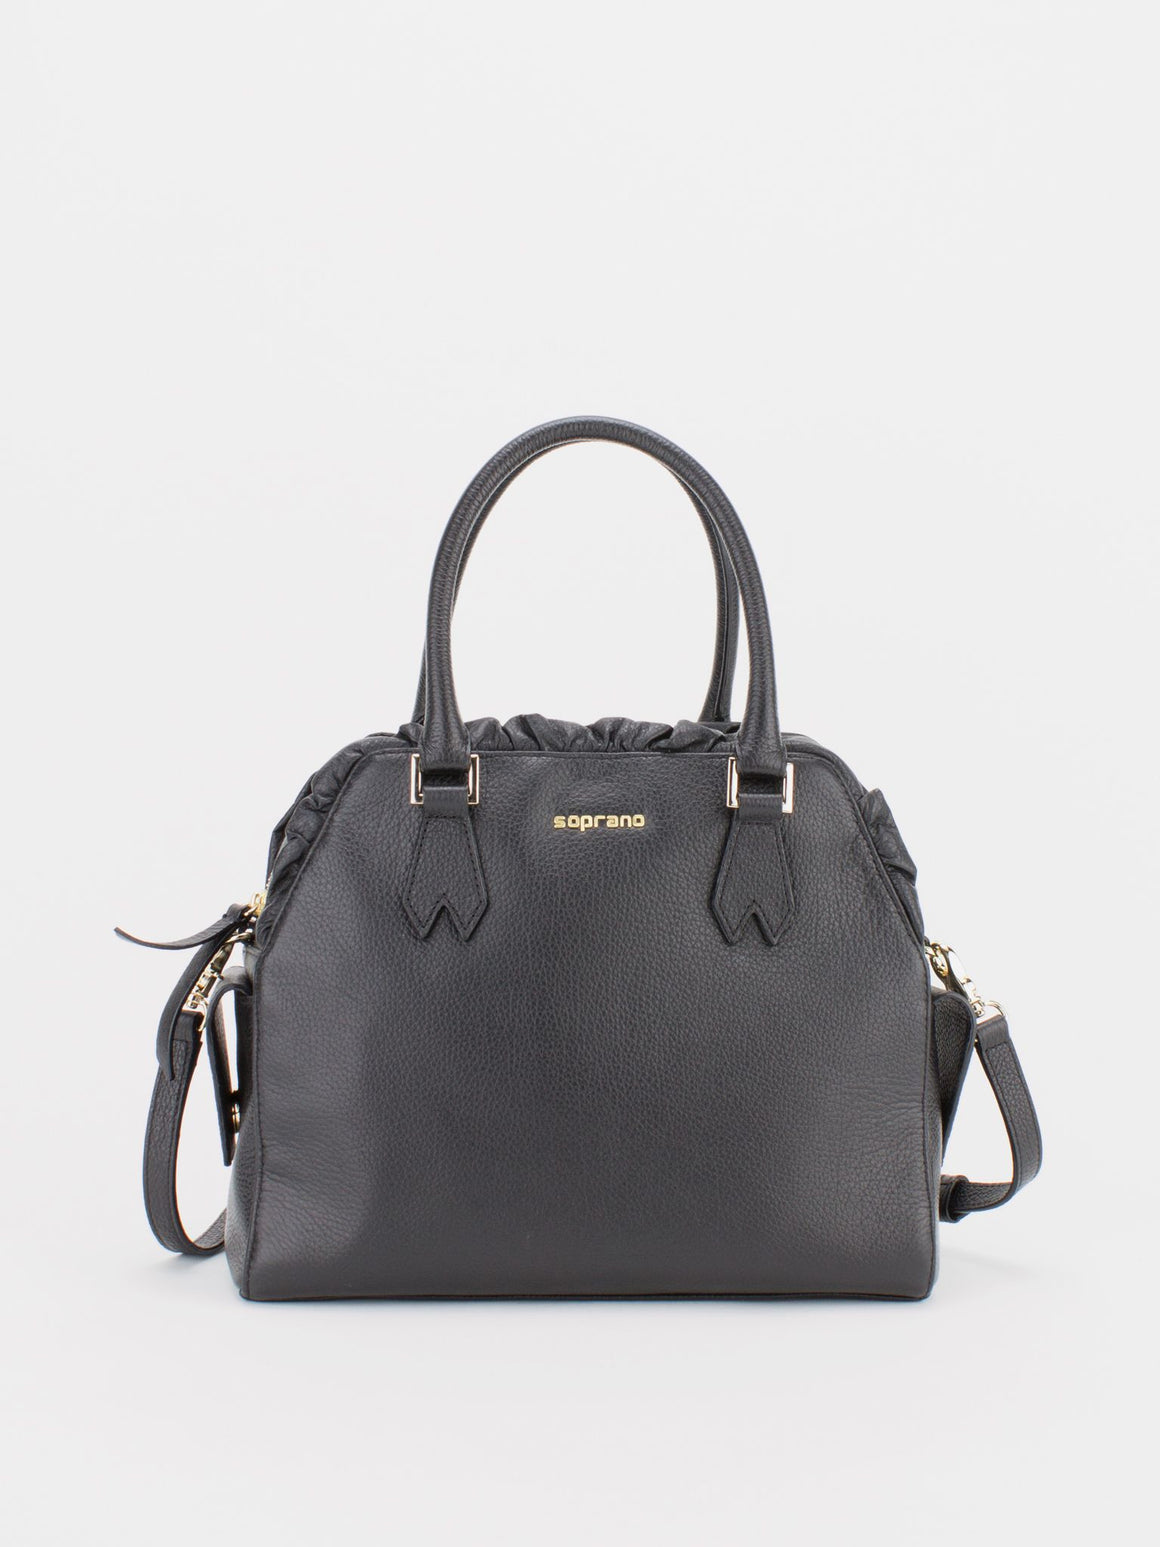 TIARA Leather Satchel with Ruched Detail - Black